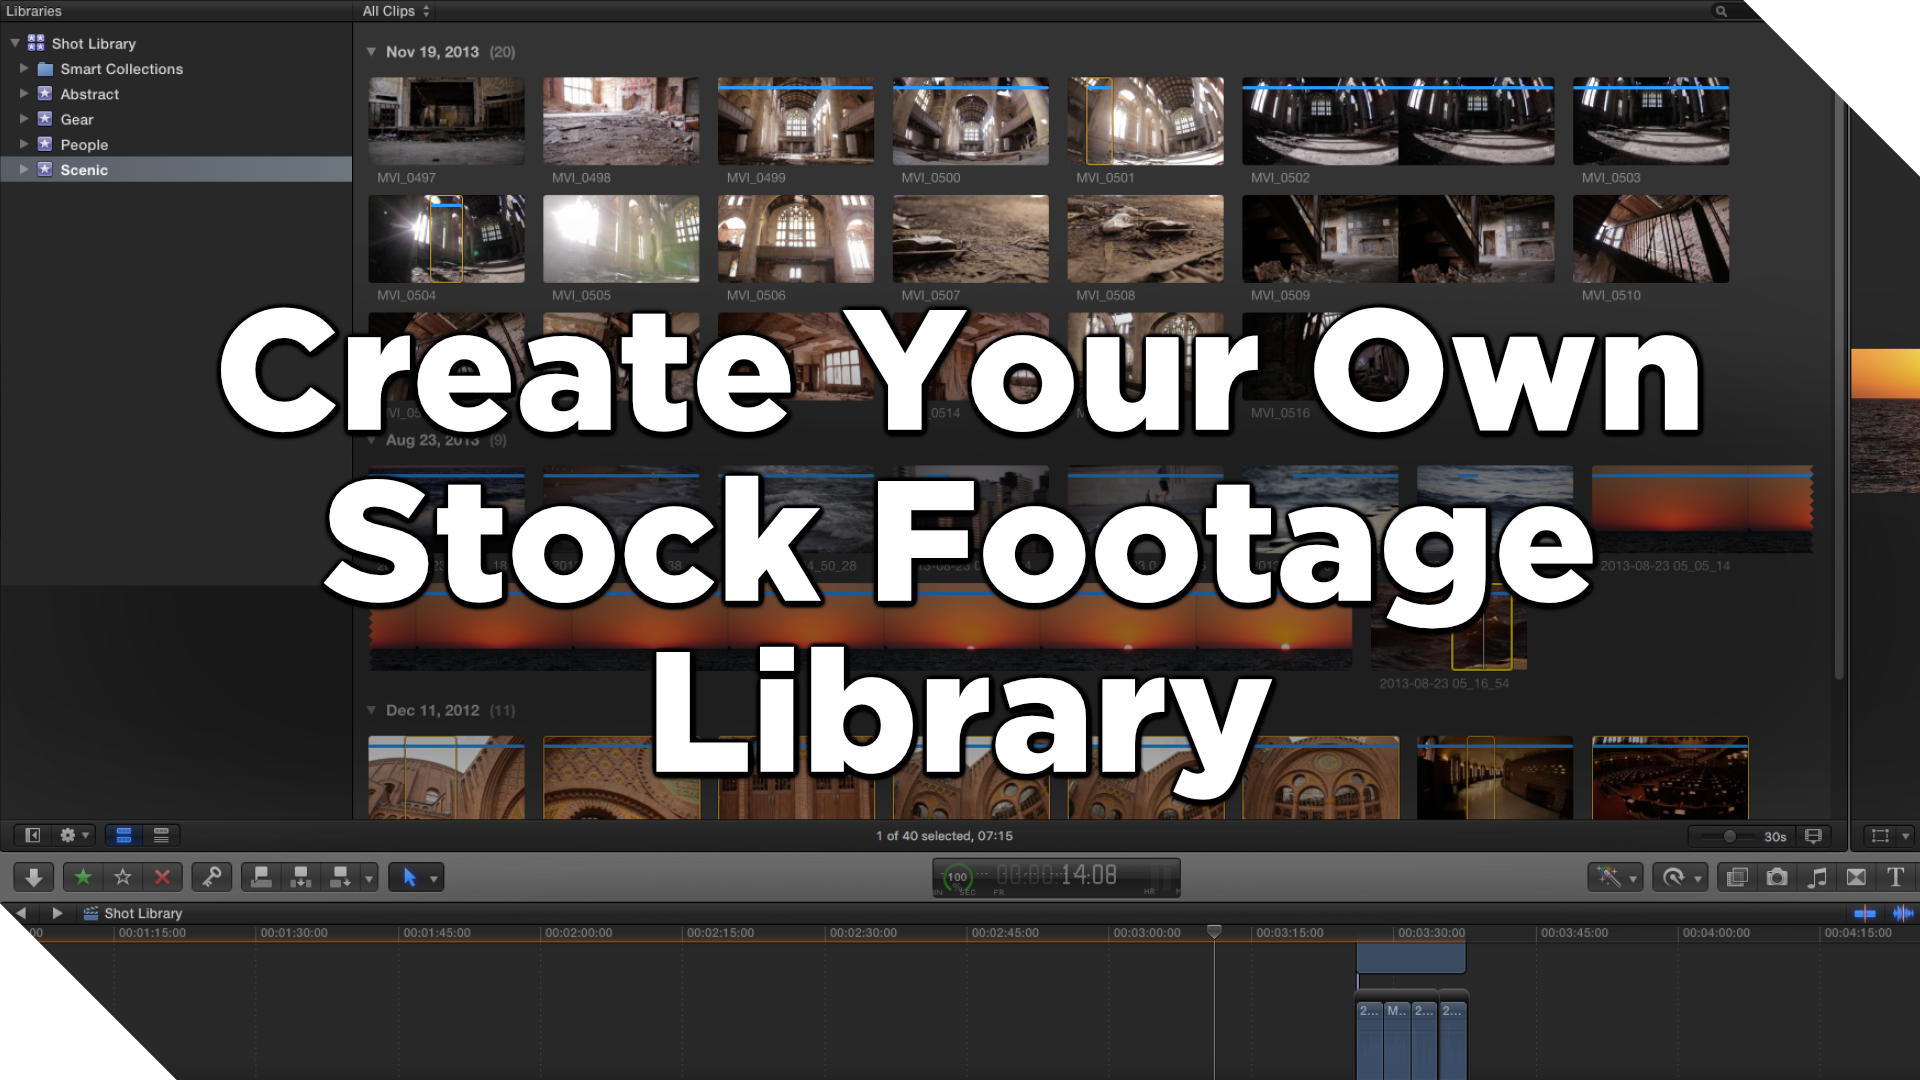 How to Create Your Own Stock Footage Library